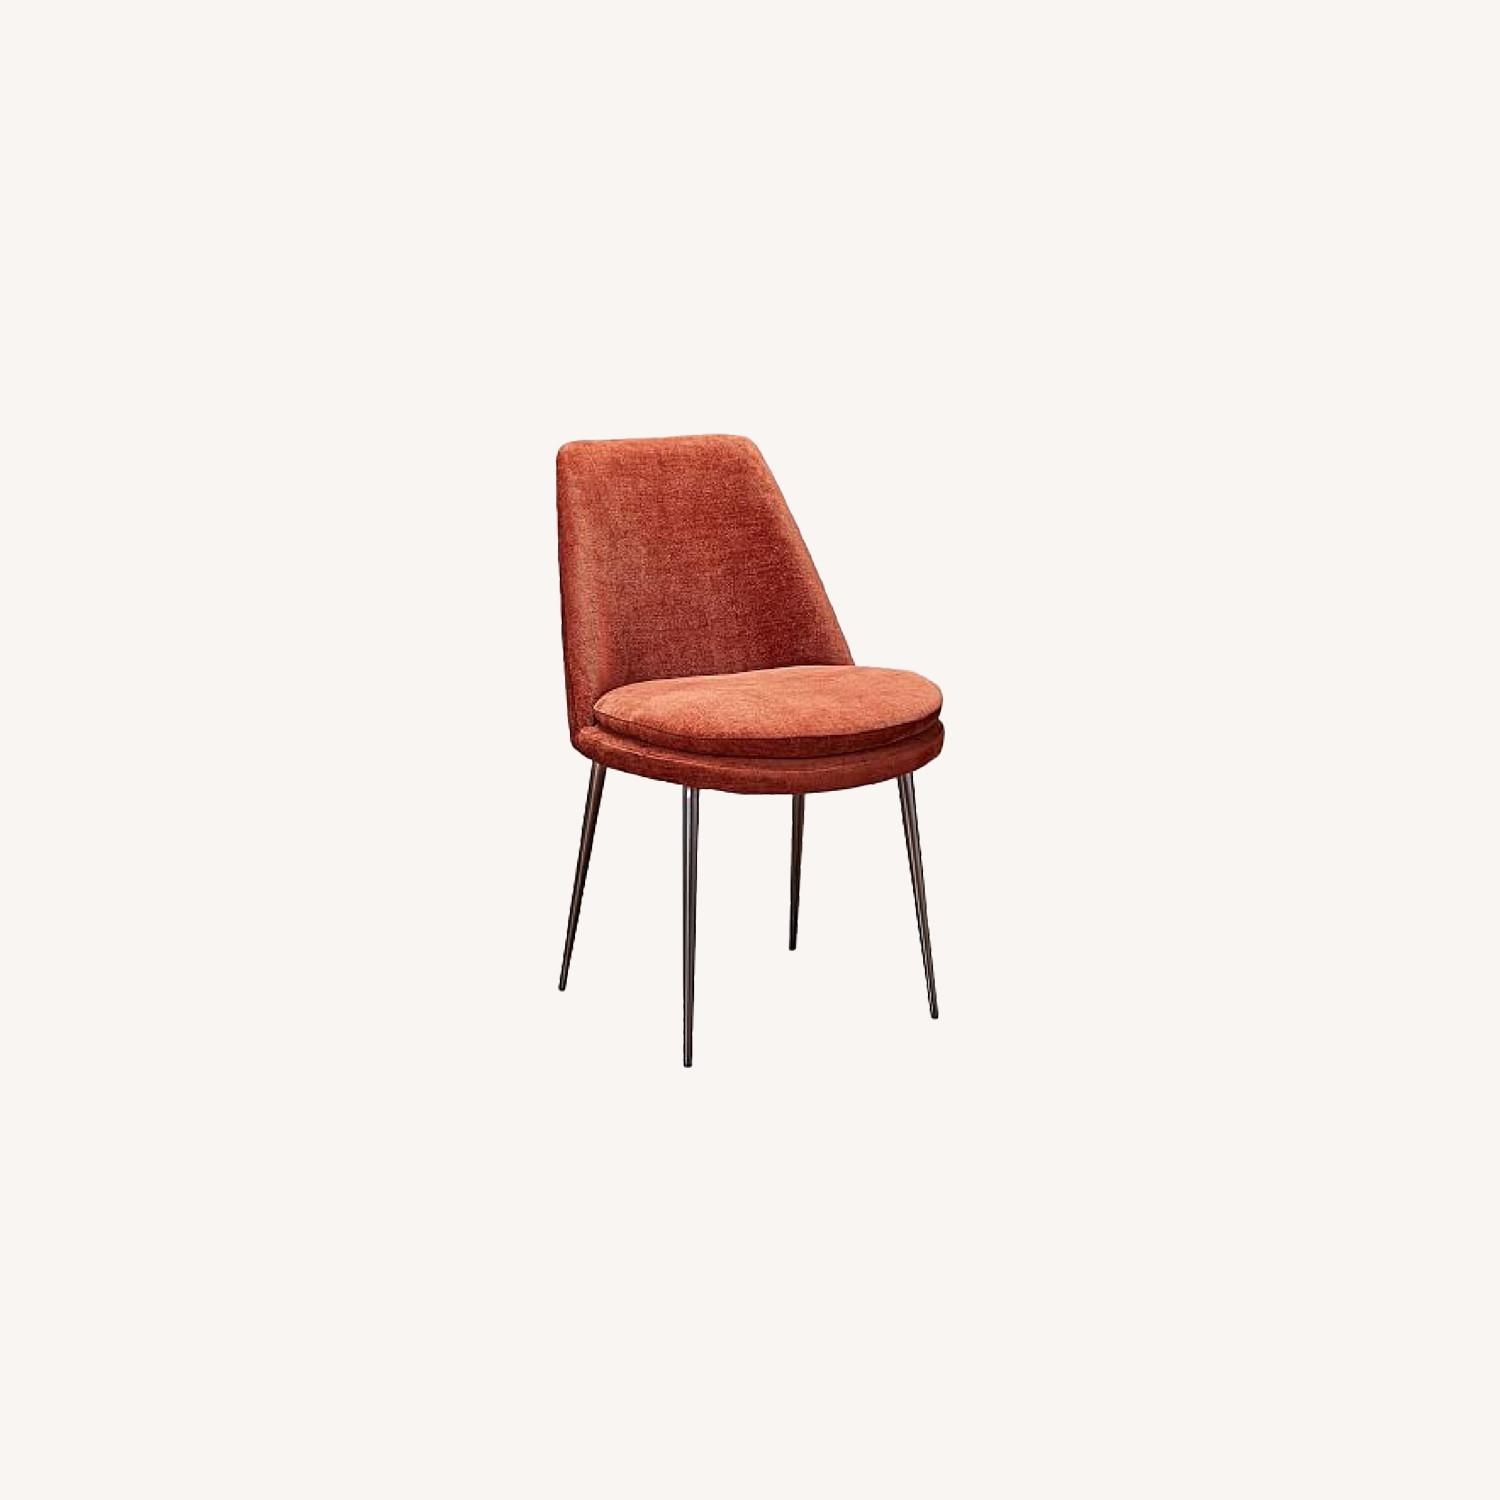 West Elm Distressed Velvet Dining Chairs - image-0